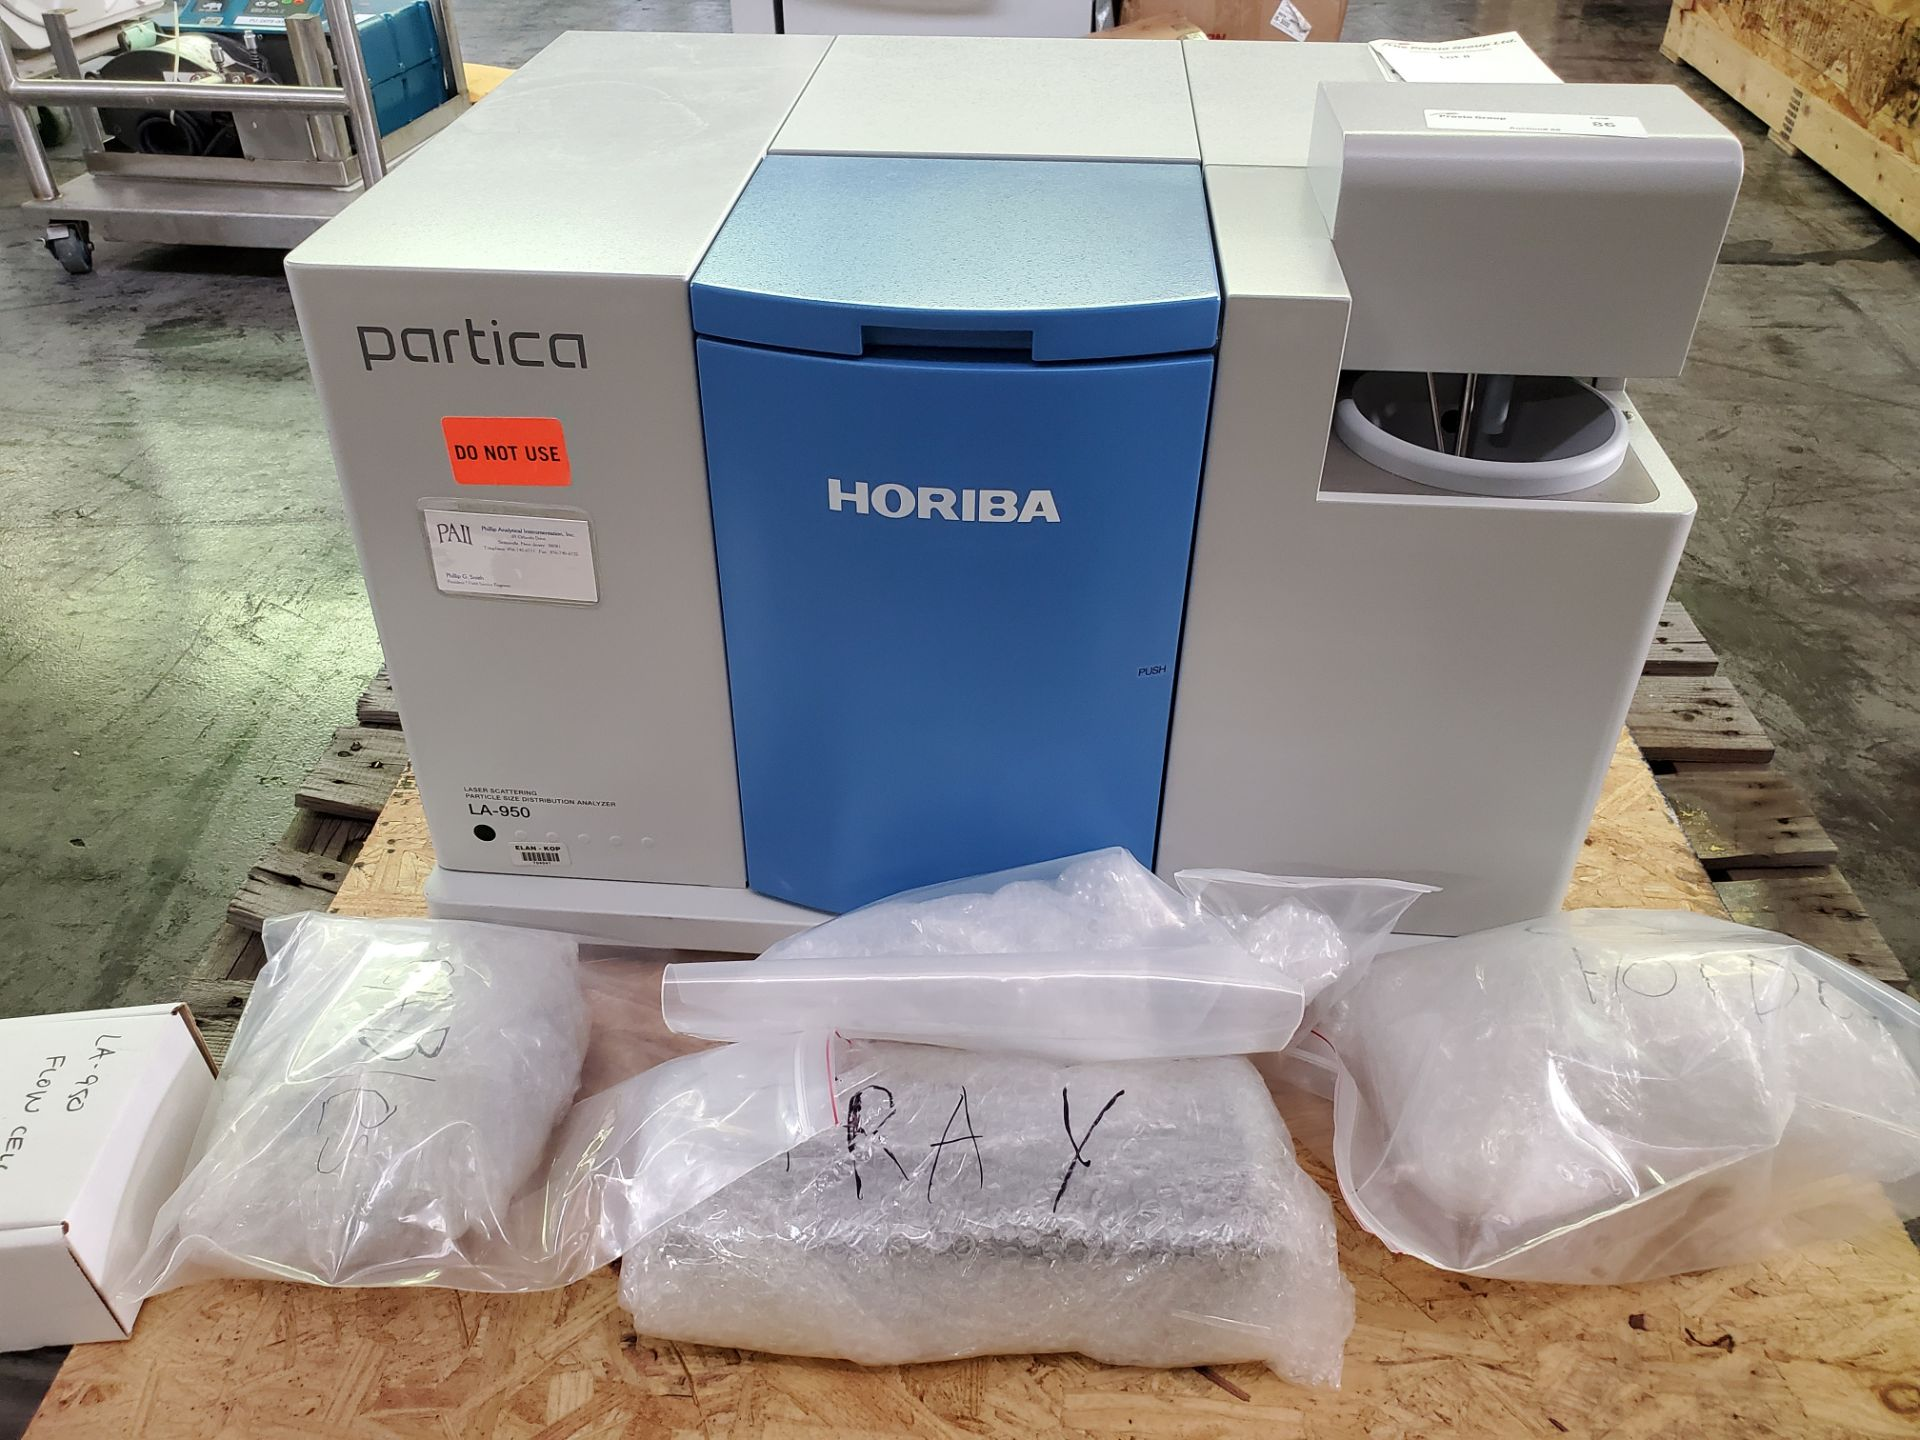 Horiba Laser Scattering Particle Size Distribution Analyzer, model LA-950, with components,